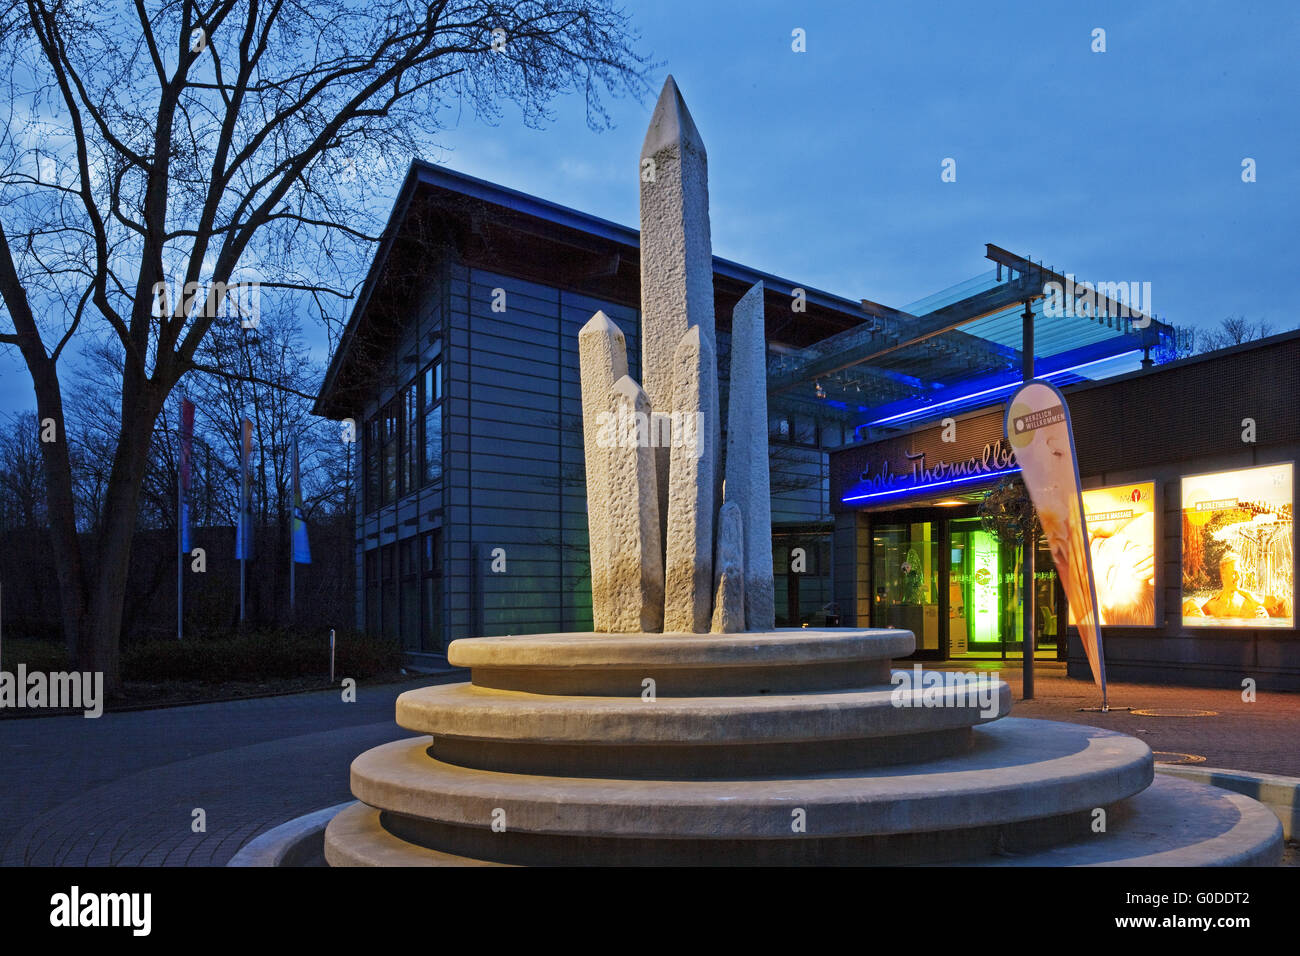 salt crystal fountain in front of the spa - Stock Image